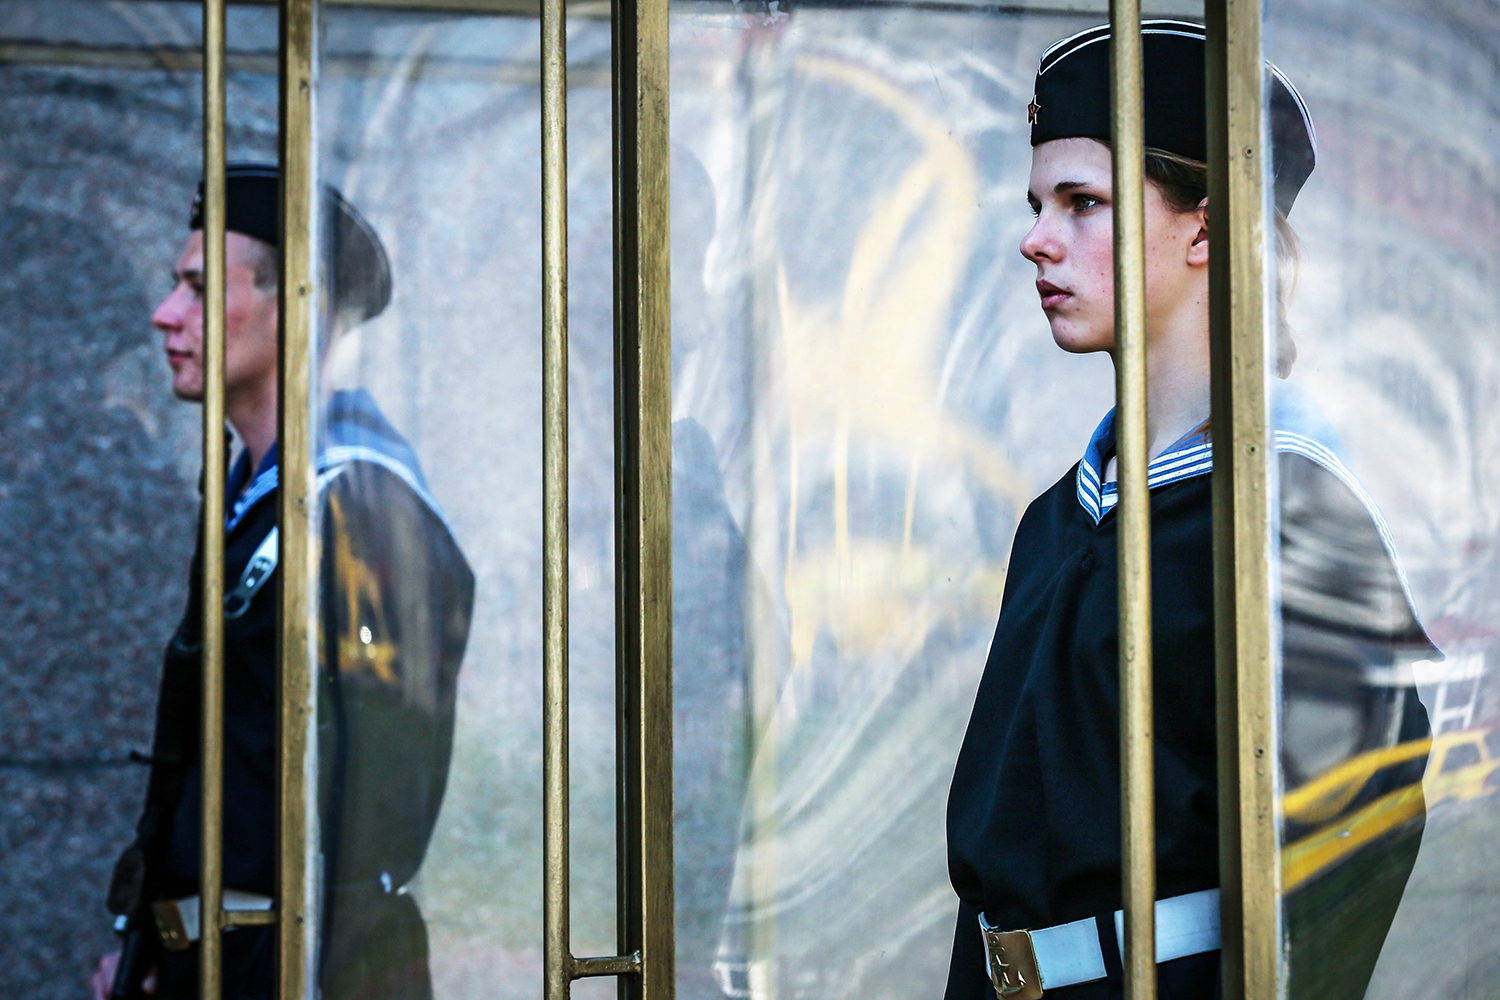 Mar. 27, 2014.  Crimean schoolchildren dressed as Soviet navy servicemen perform the change of the honor guard ceremony at the Memorial to the Heroes of the defense of Sevastopol 1941-1942 in Sevastopol, Crimea.